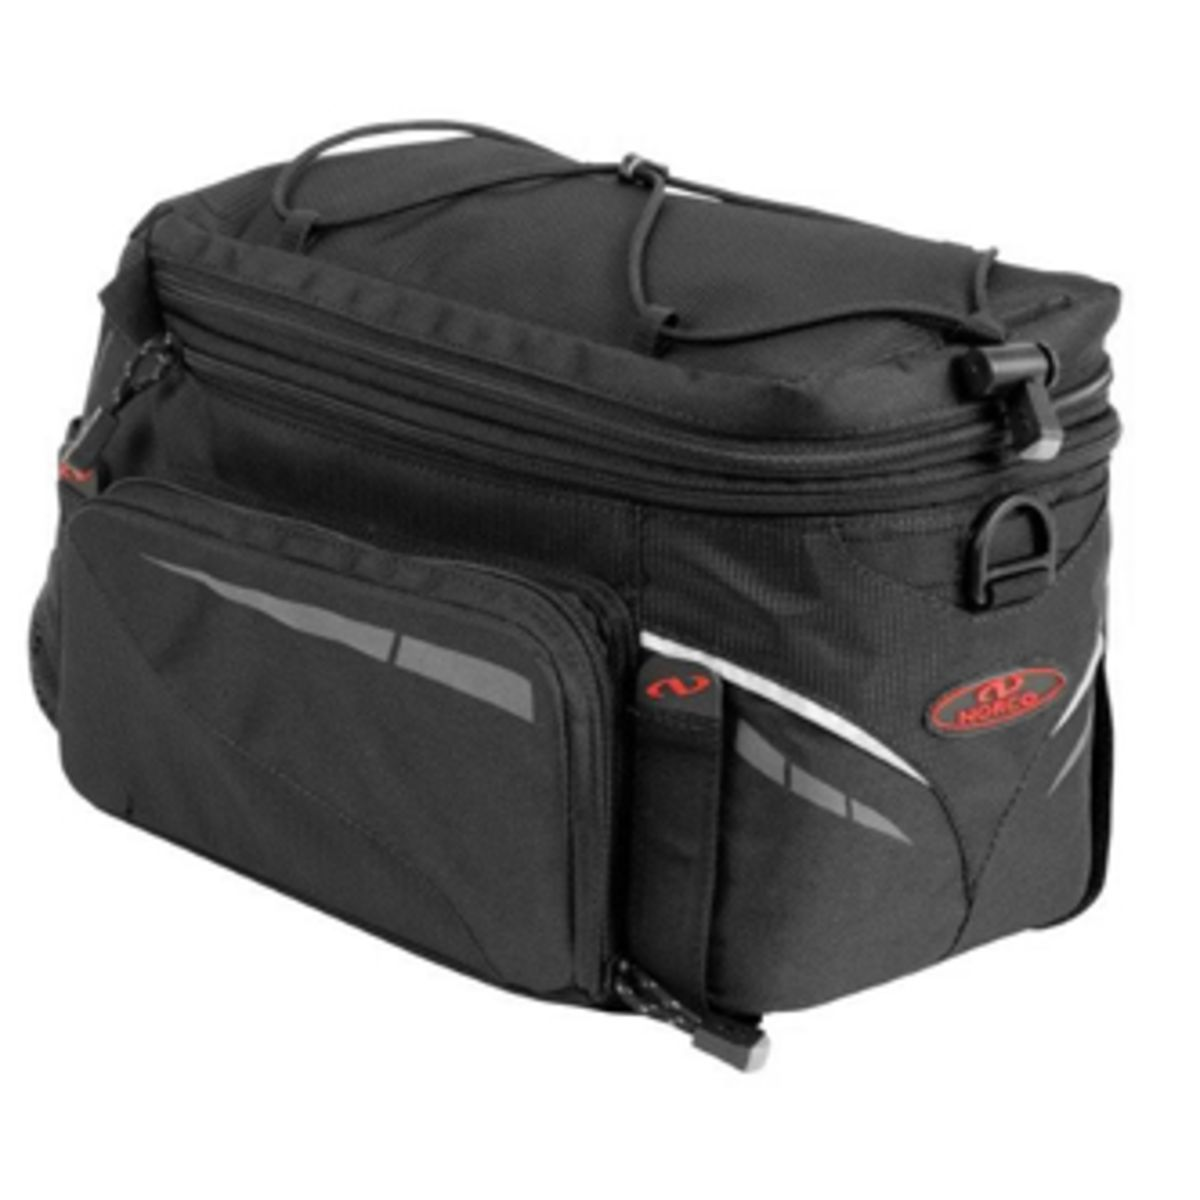 CANMORE trunk bag